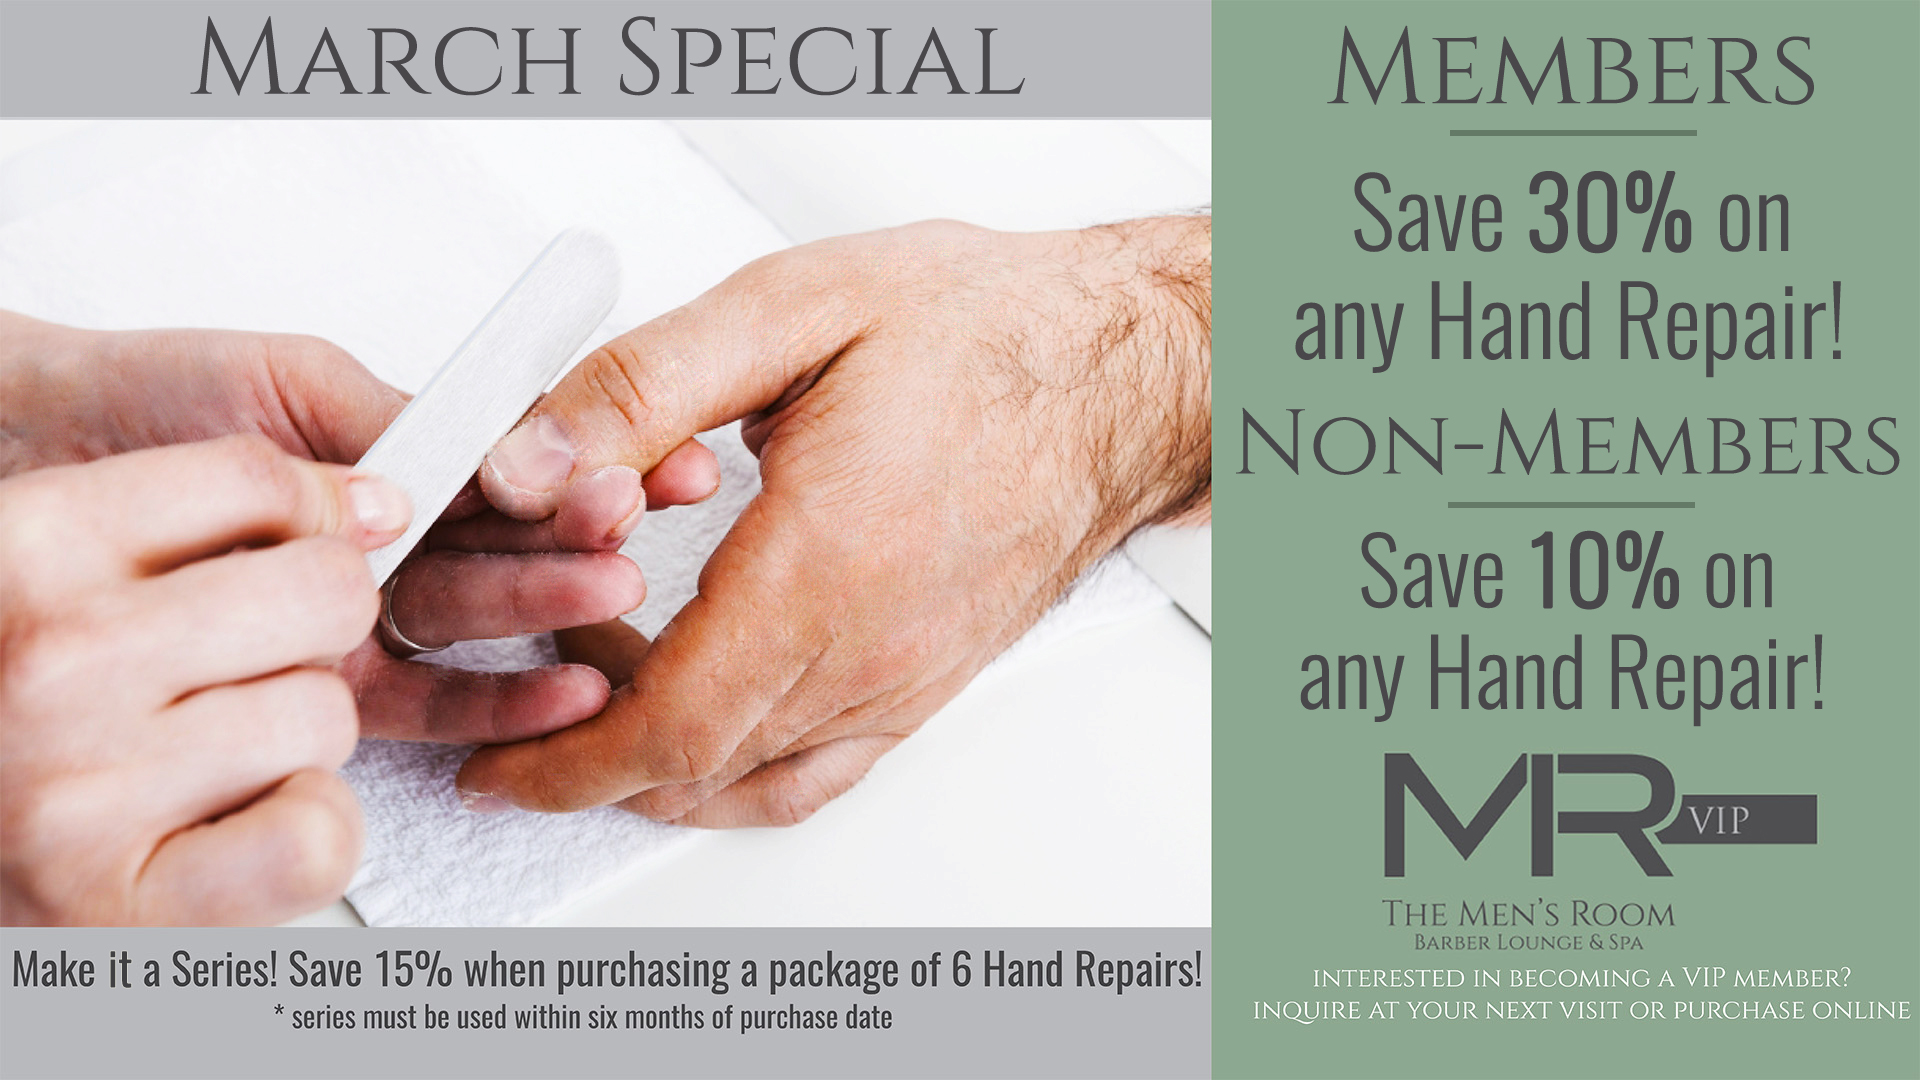 The Men's Room Barber, Lounge, & Spa - March Special 2017